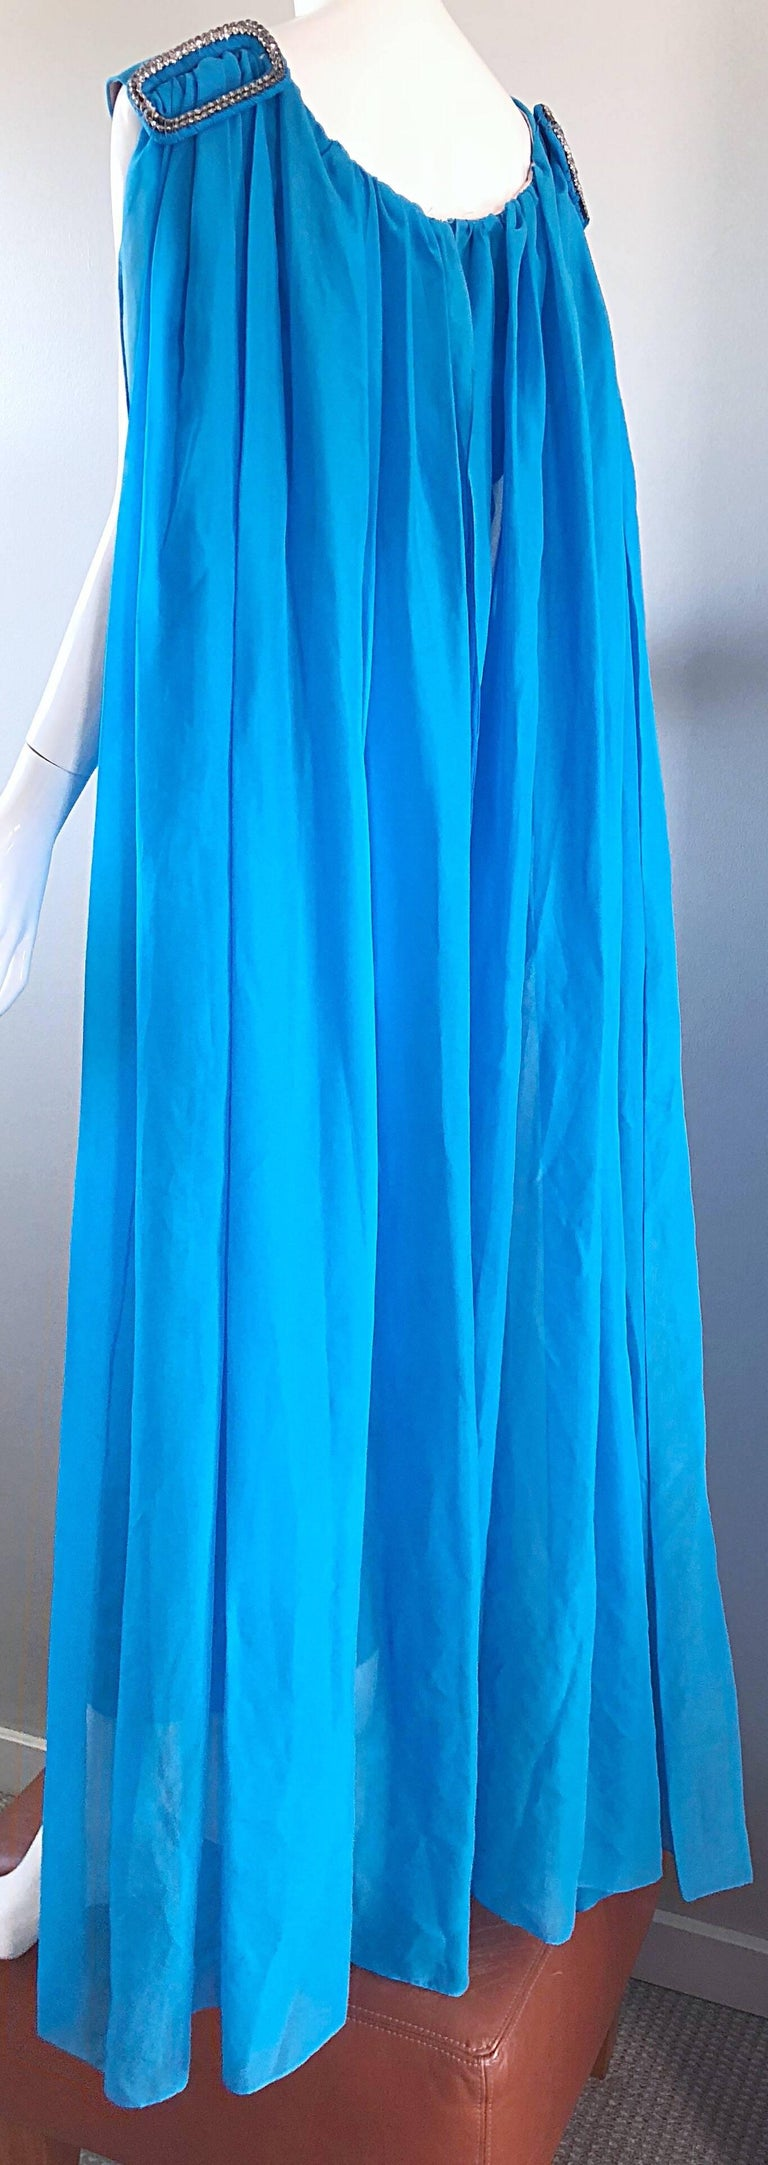 Incredible 1960s Turquoise Blue Chiffon Rhinestone Encrusted Vintage Cape Gown For Sale 8